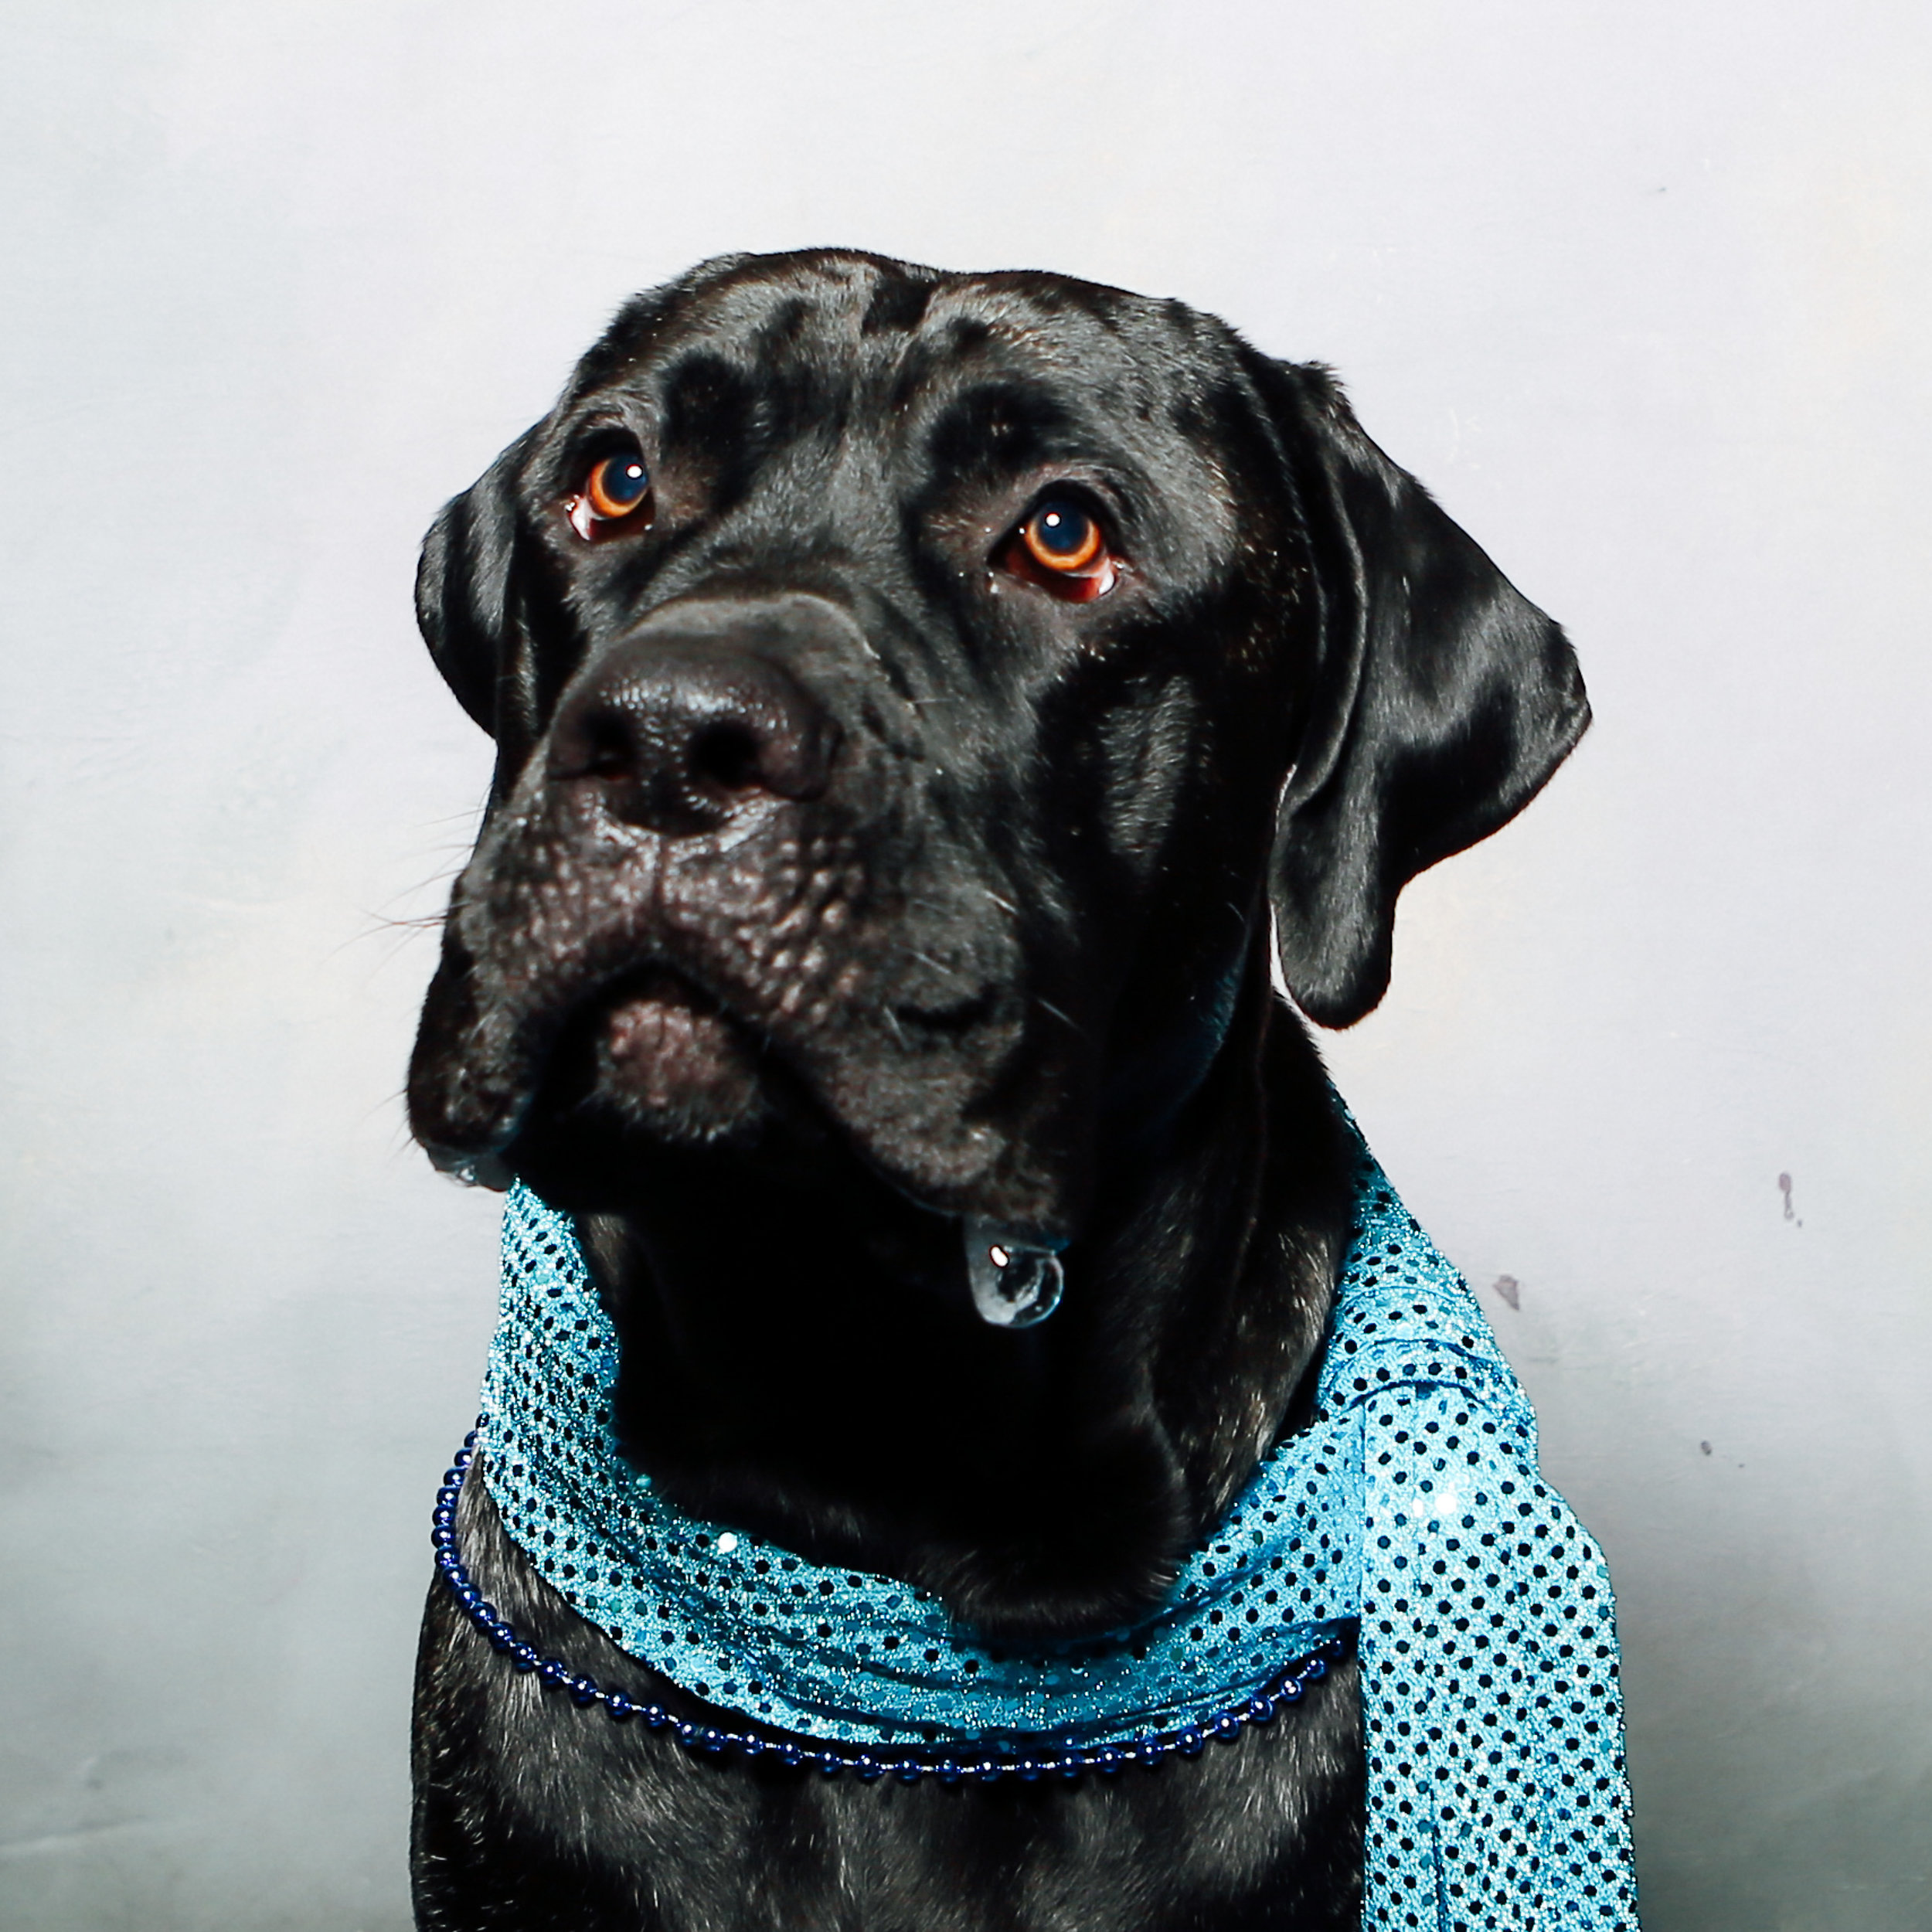 Jake is a silly dog who likes walks with Cameron and Rayla, as well as sitting in your lap, despite weighing 125 lbs. He will definitely get drool on your pants.